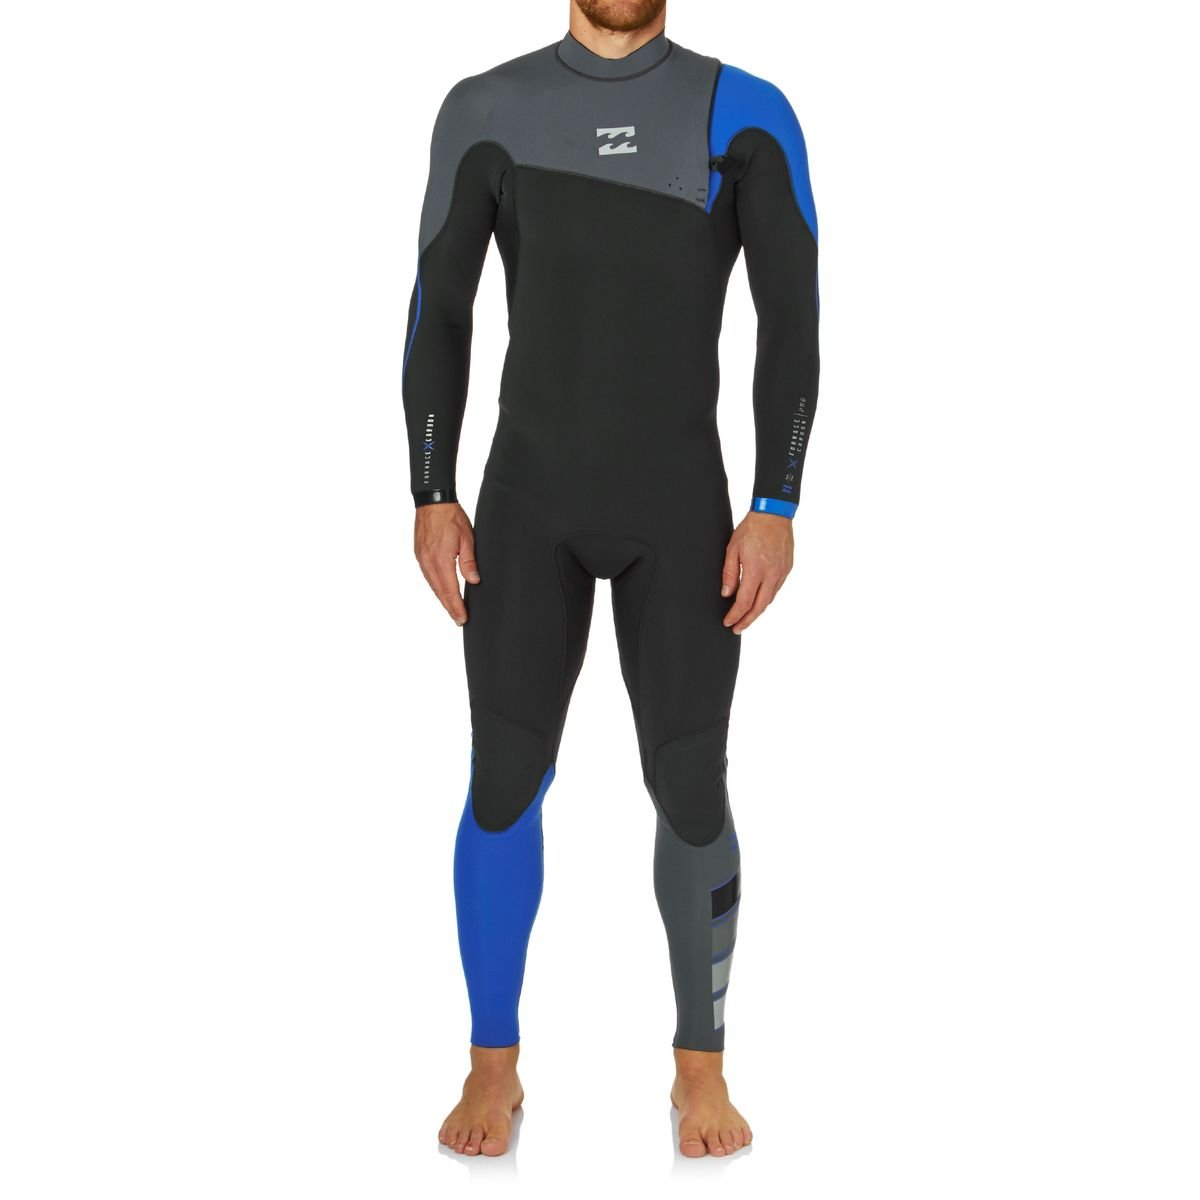 BILLABONG 2016 Furnace Pro Chest 3 2mm Zip Free Wetsuit Ocean Z43M02